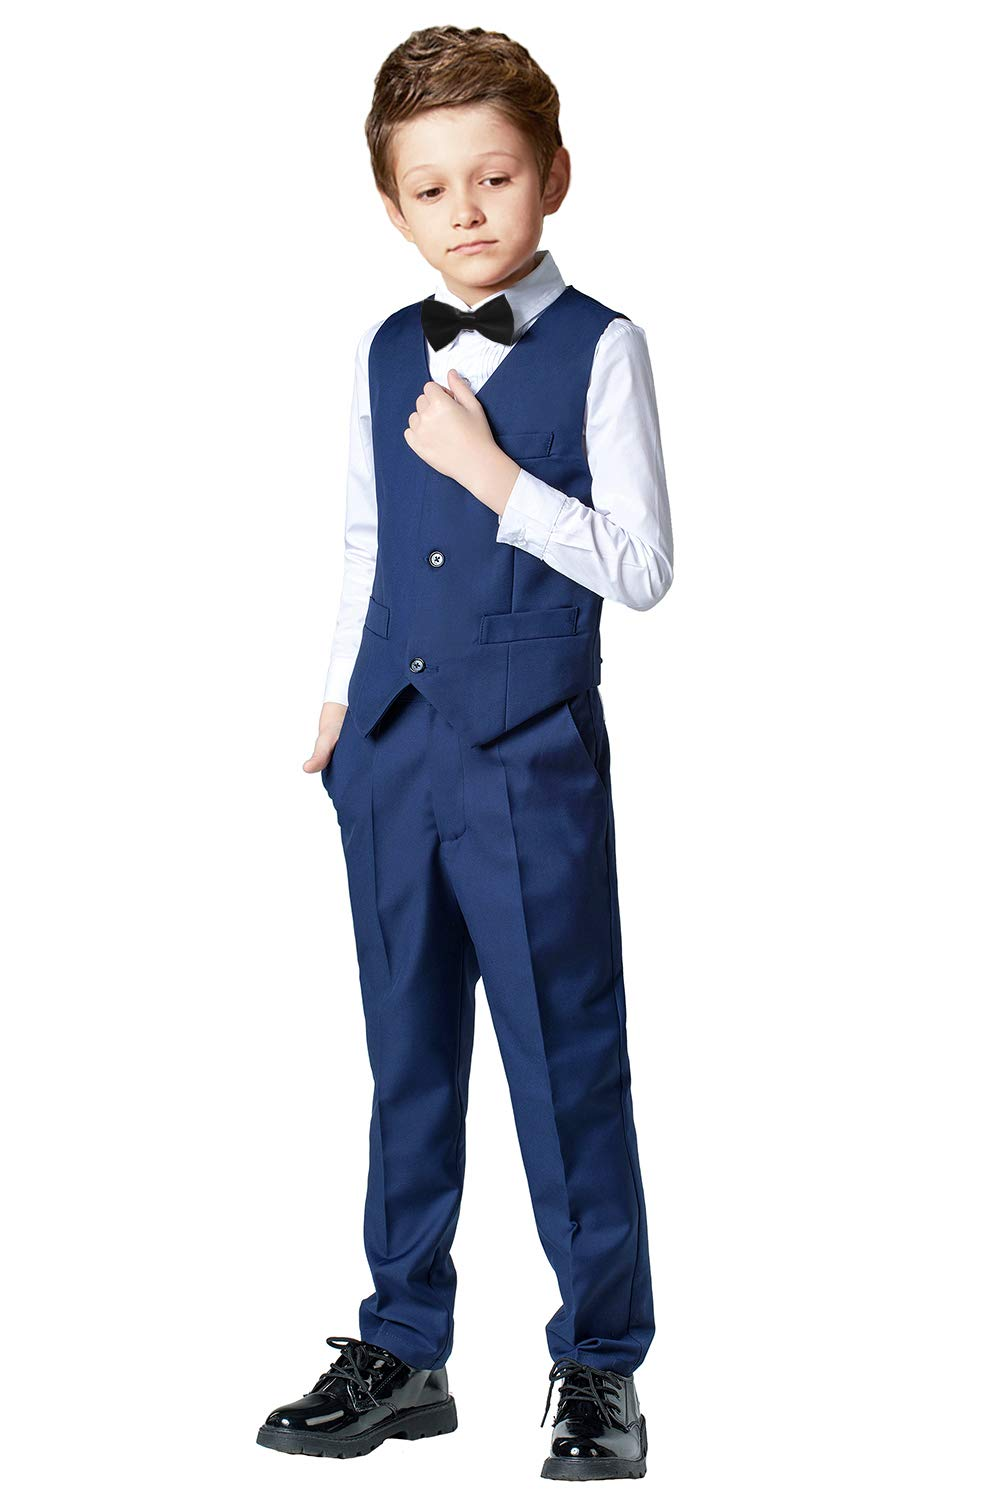 Toddler Suits for Boys Wedding Suit Dress Shirt Navy Blue Vest and Pants Sets for Boy with Bow Tie Size 10